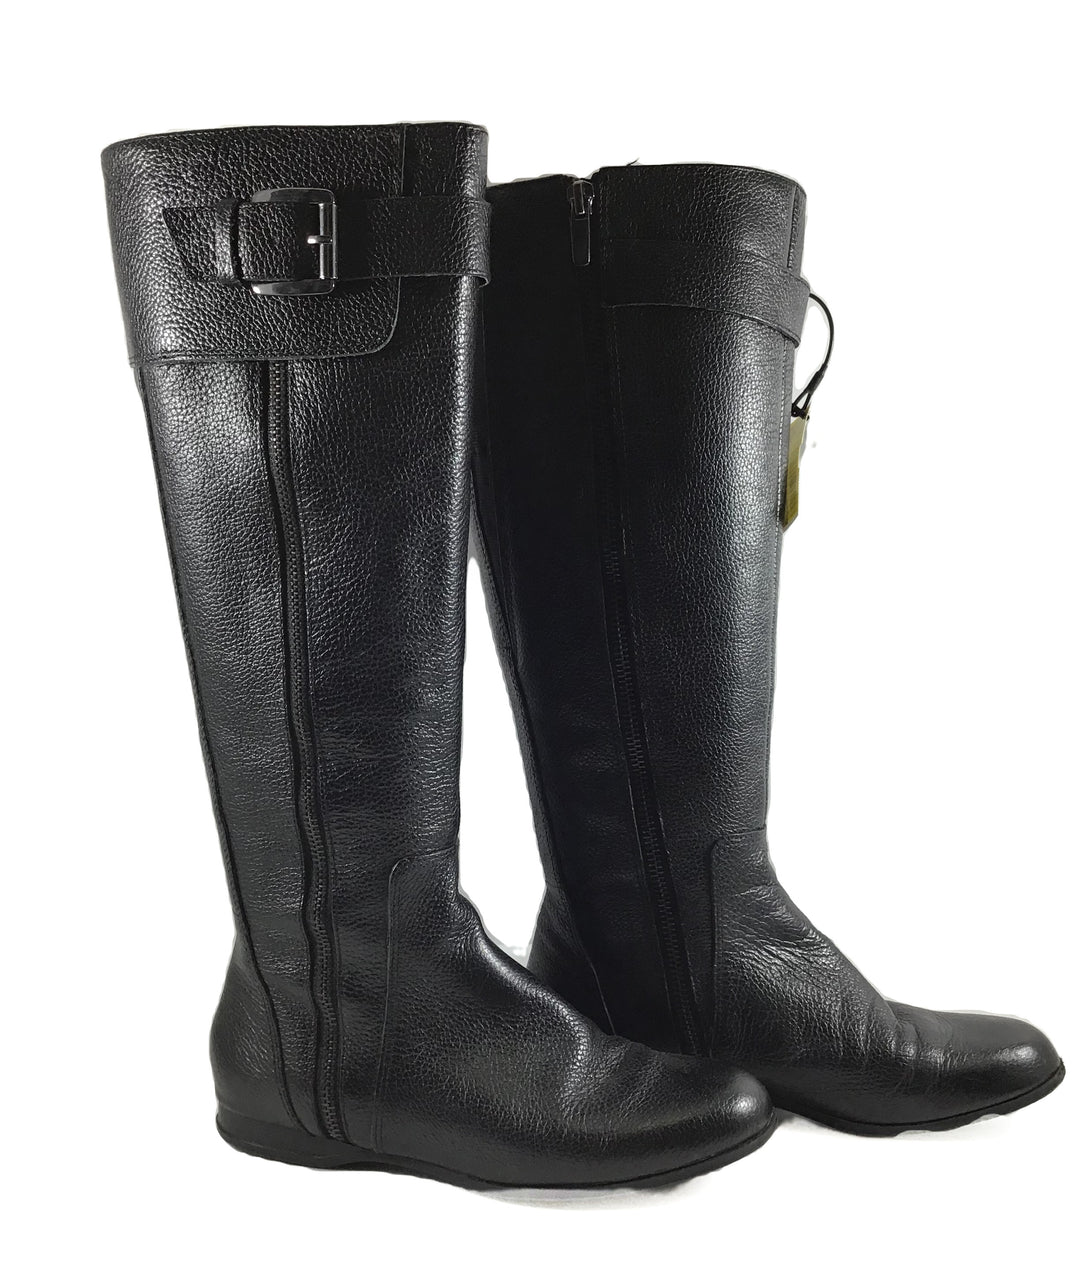 Primary Photo - BRAND: ENZO ANGIOLINI <BR>STYLE: BOOTS KNEE <BR>COLOR: BLACK <BR>SIZE: 5 <BR>SKU: 213-213143-6470